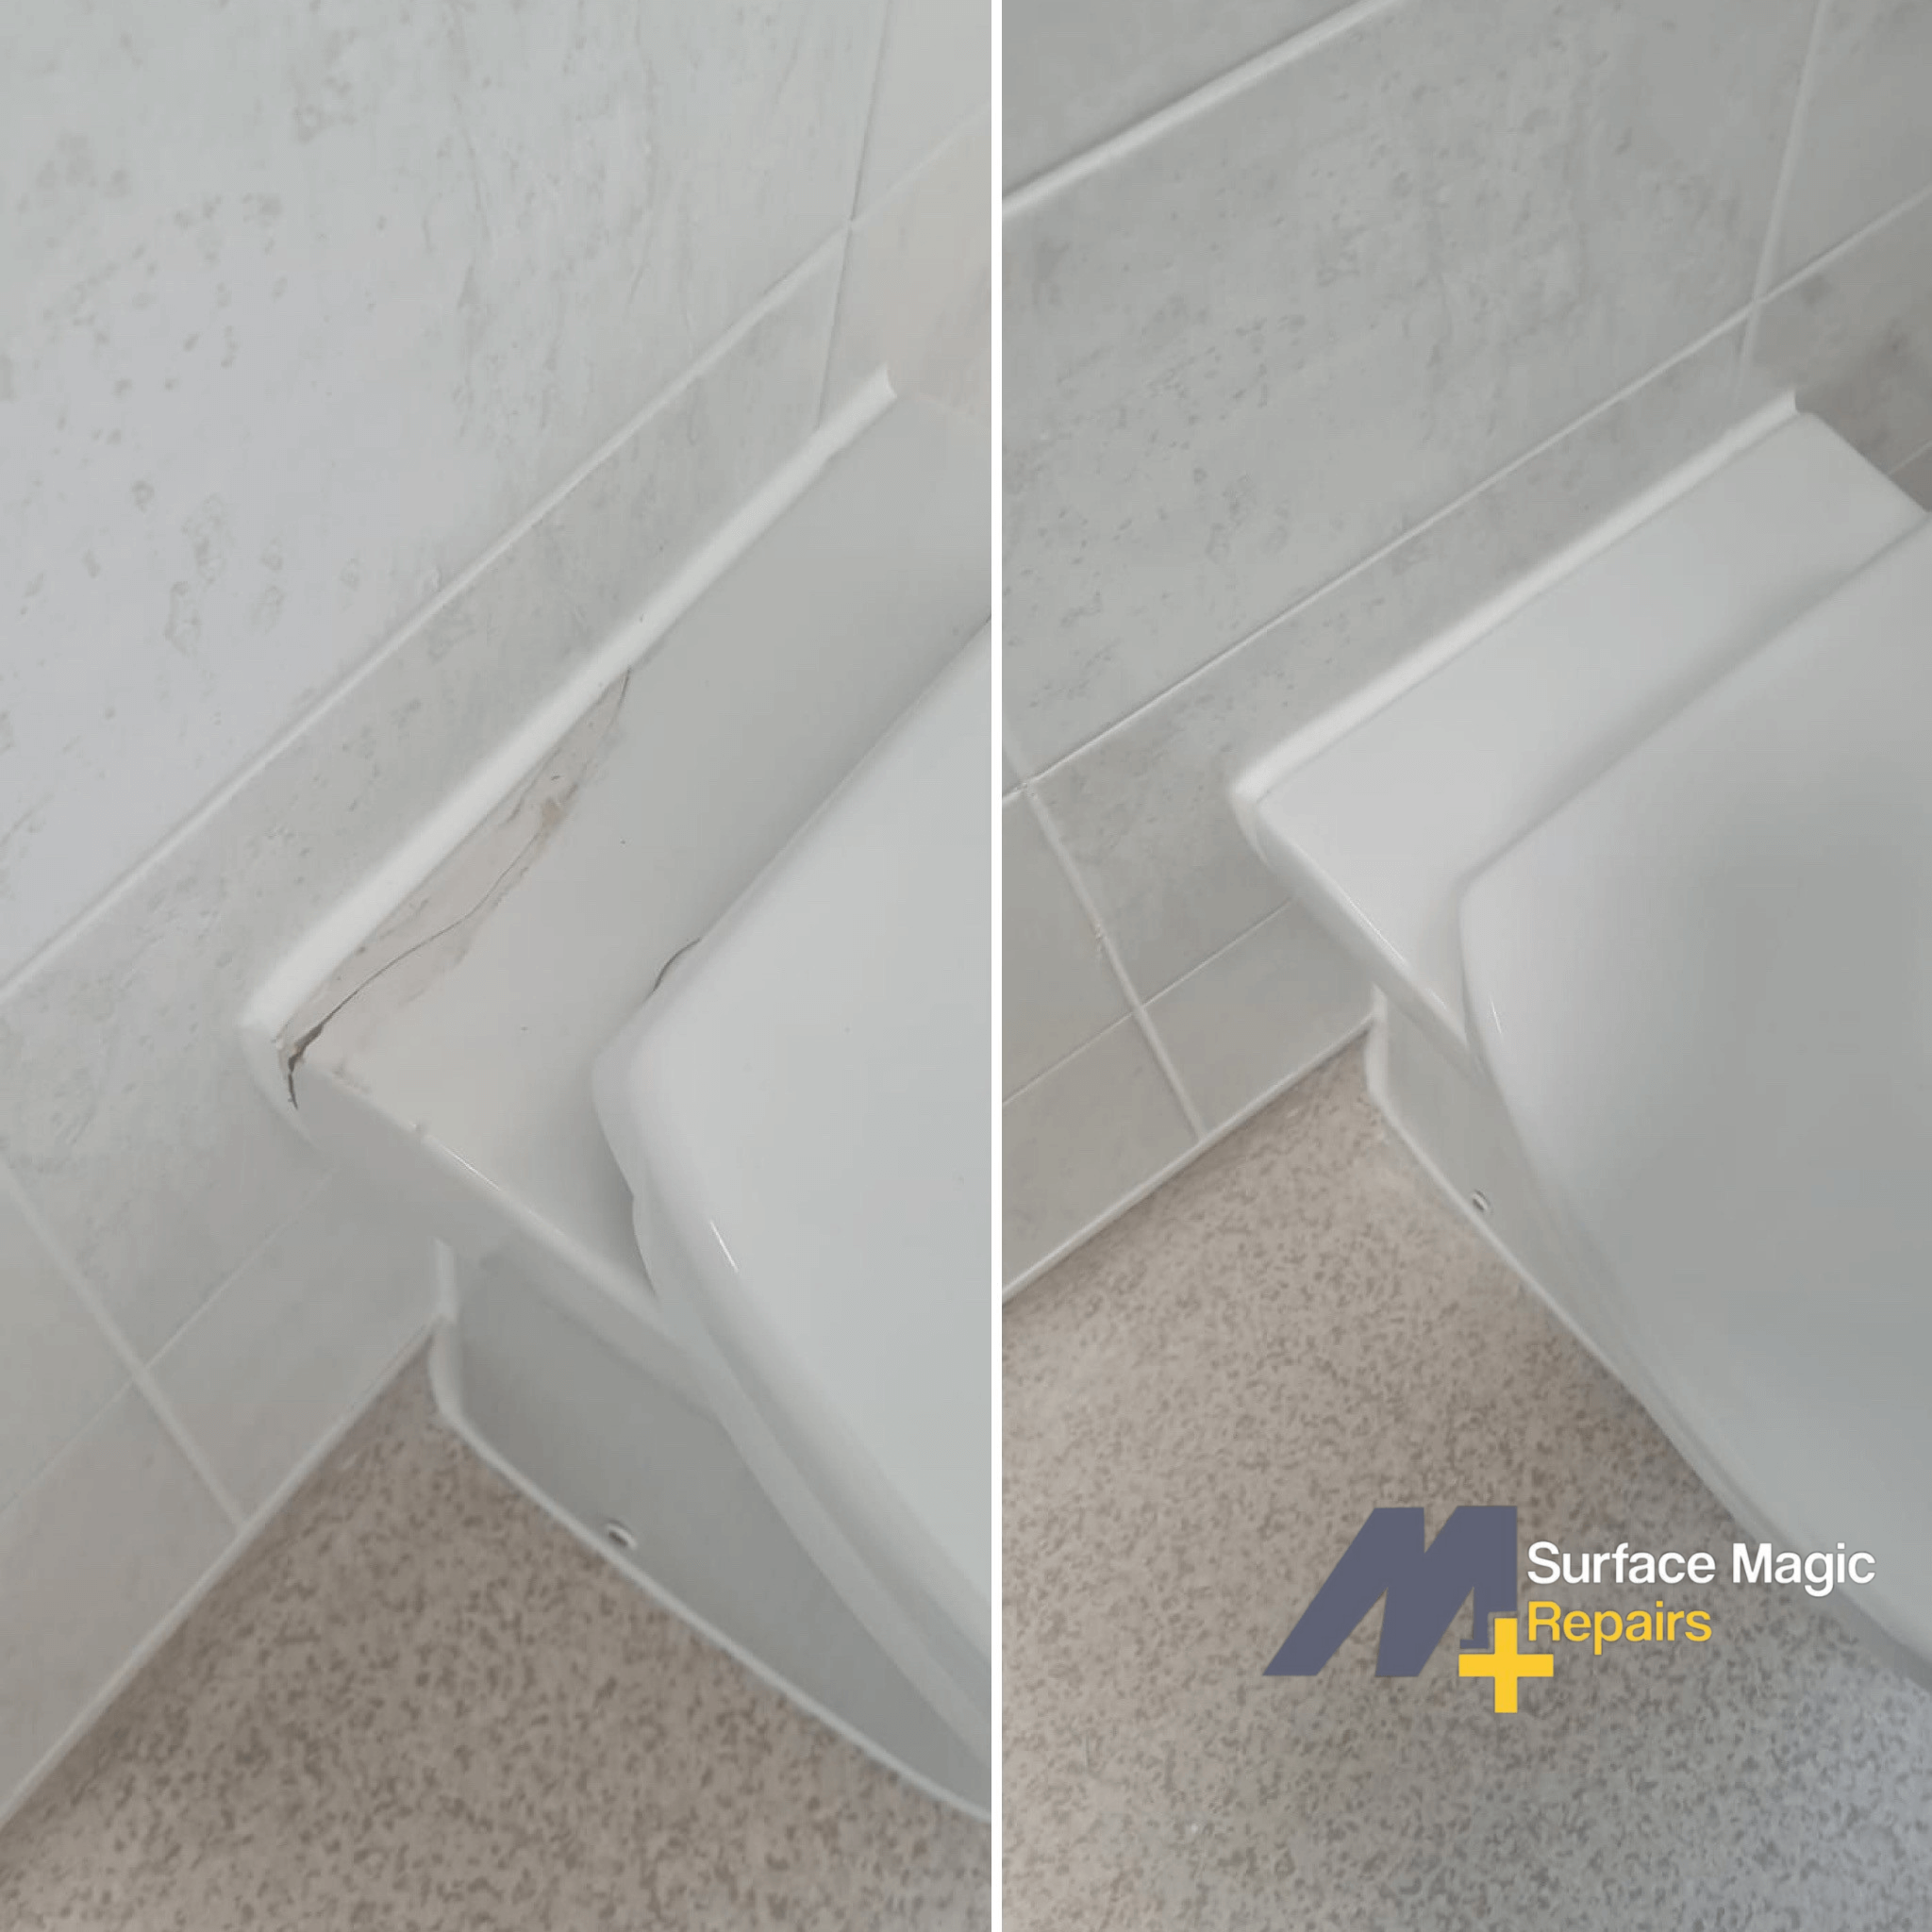 Before and after of toilet repair.